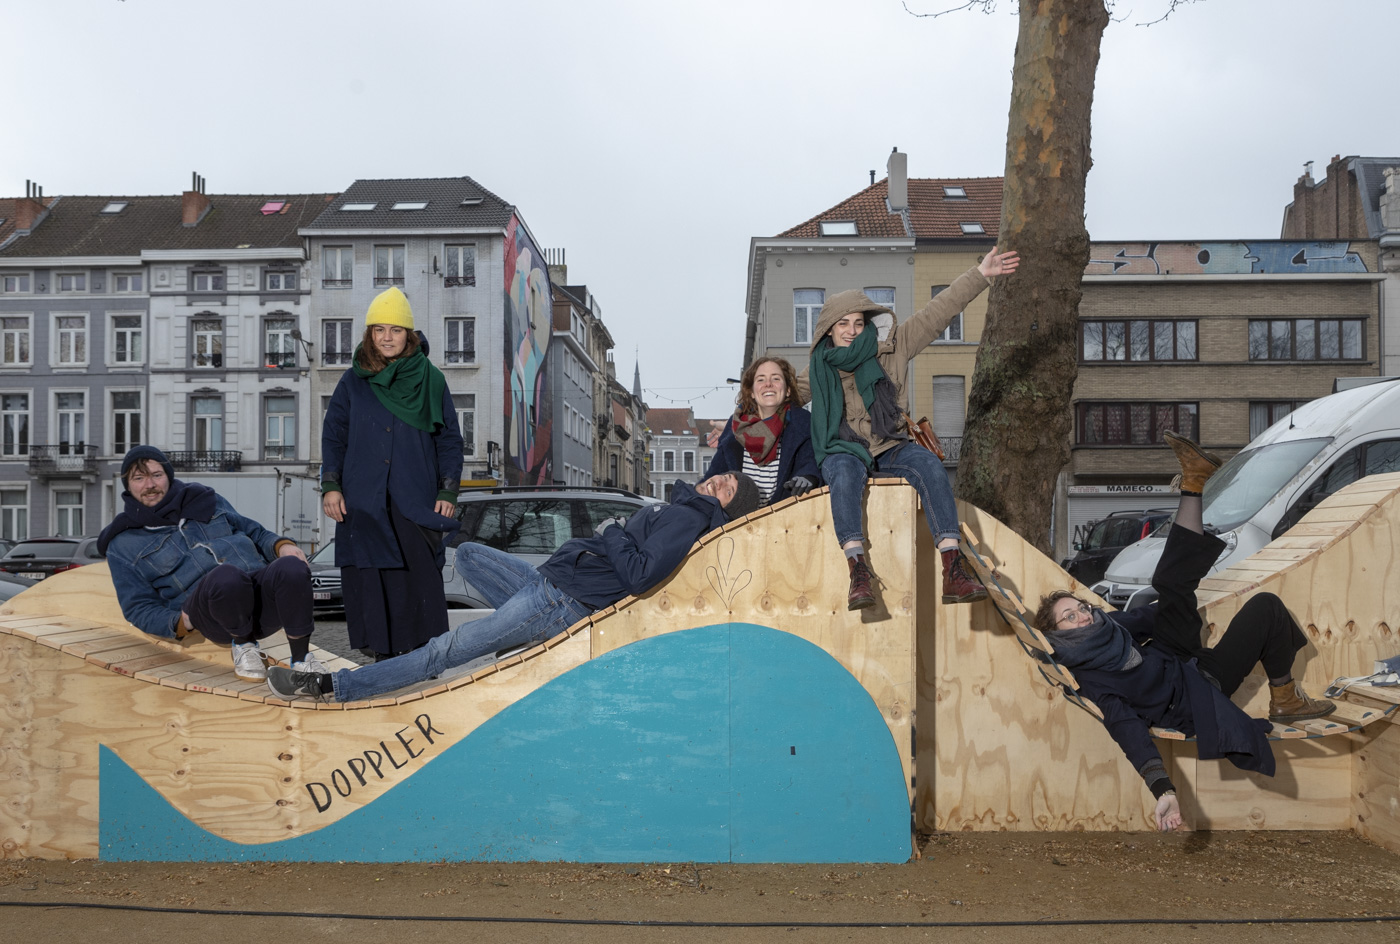 The longest bench of Brussels